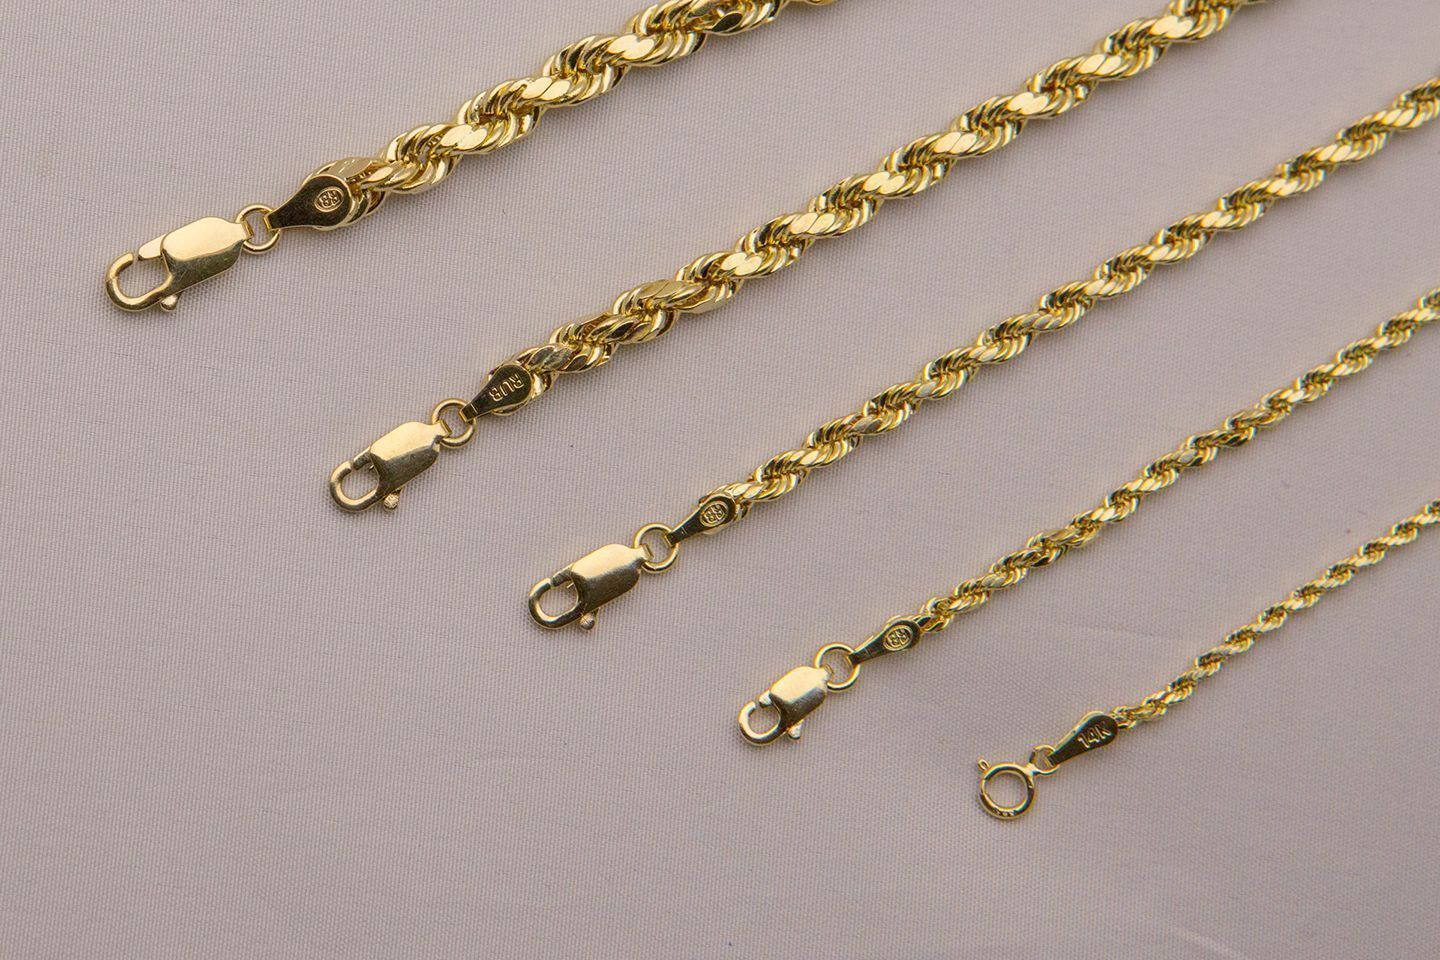 Brand New 14k Yellow Gold 2mm 5mm Italy Rope Chain Twist Link Necklace 16 30 Gold Chains For Men Fine Gold Necklace Link Necklace